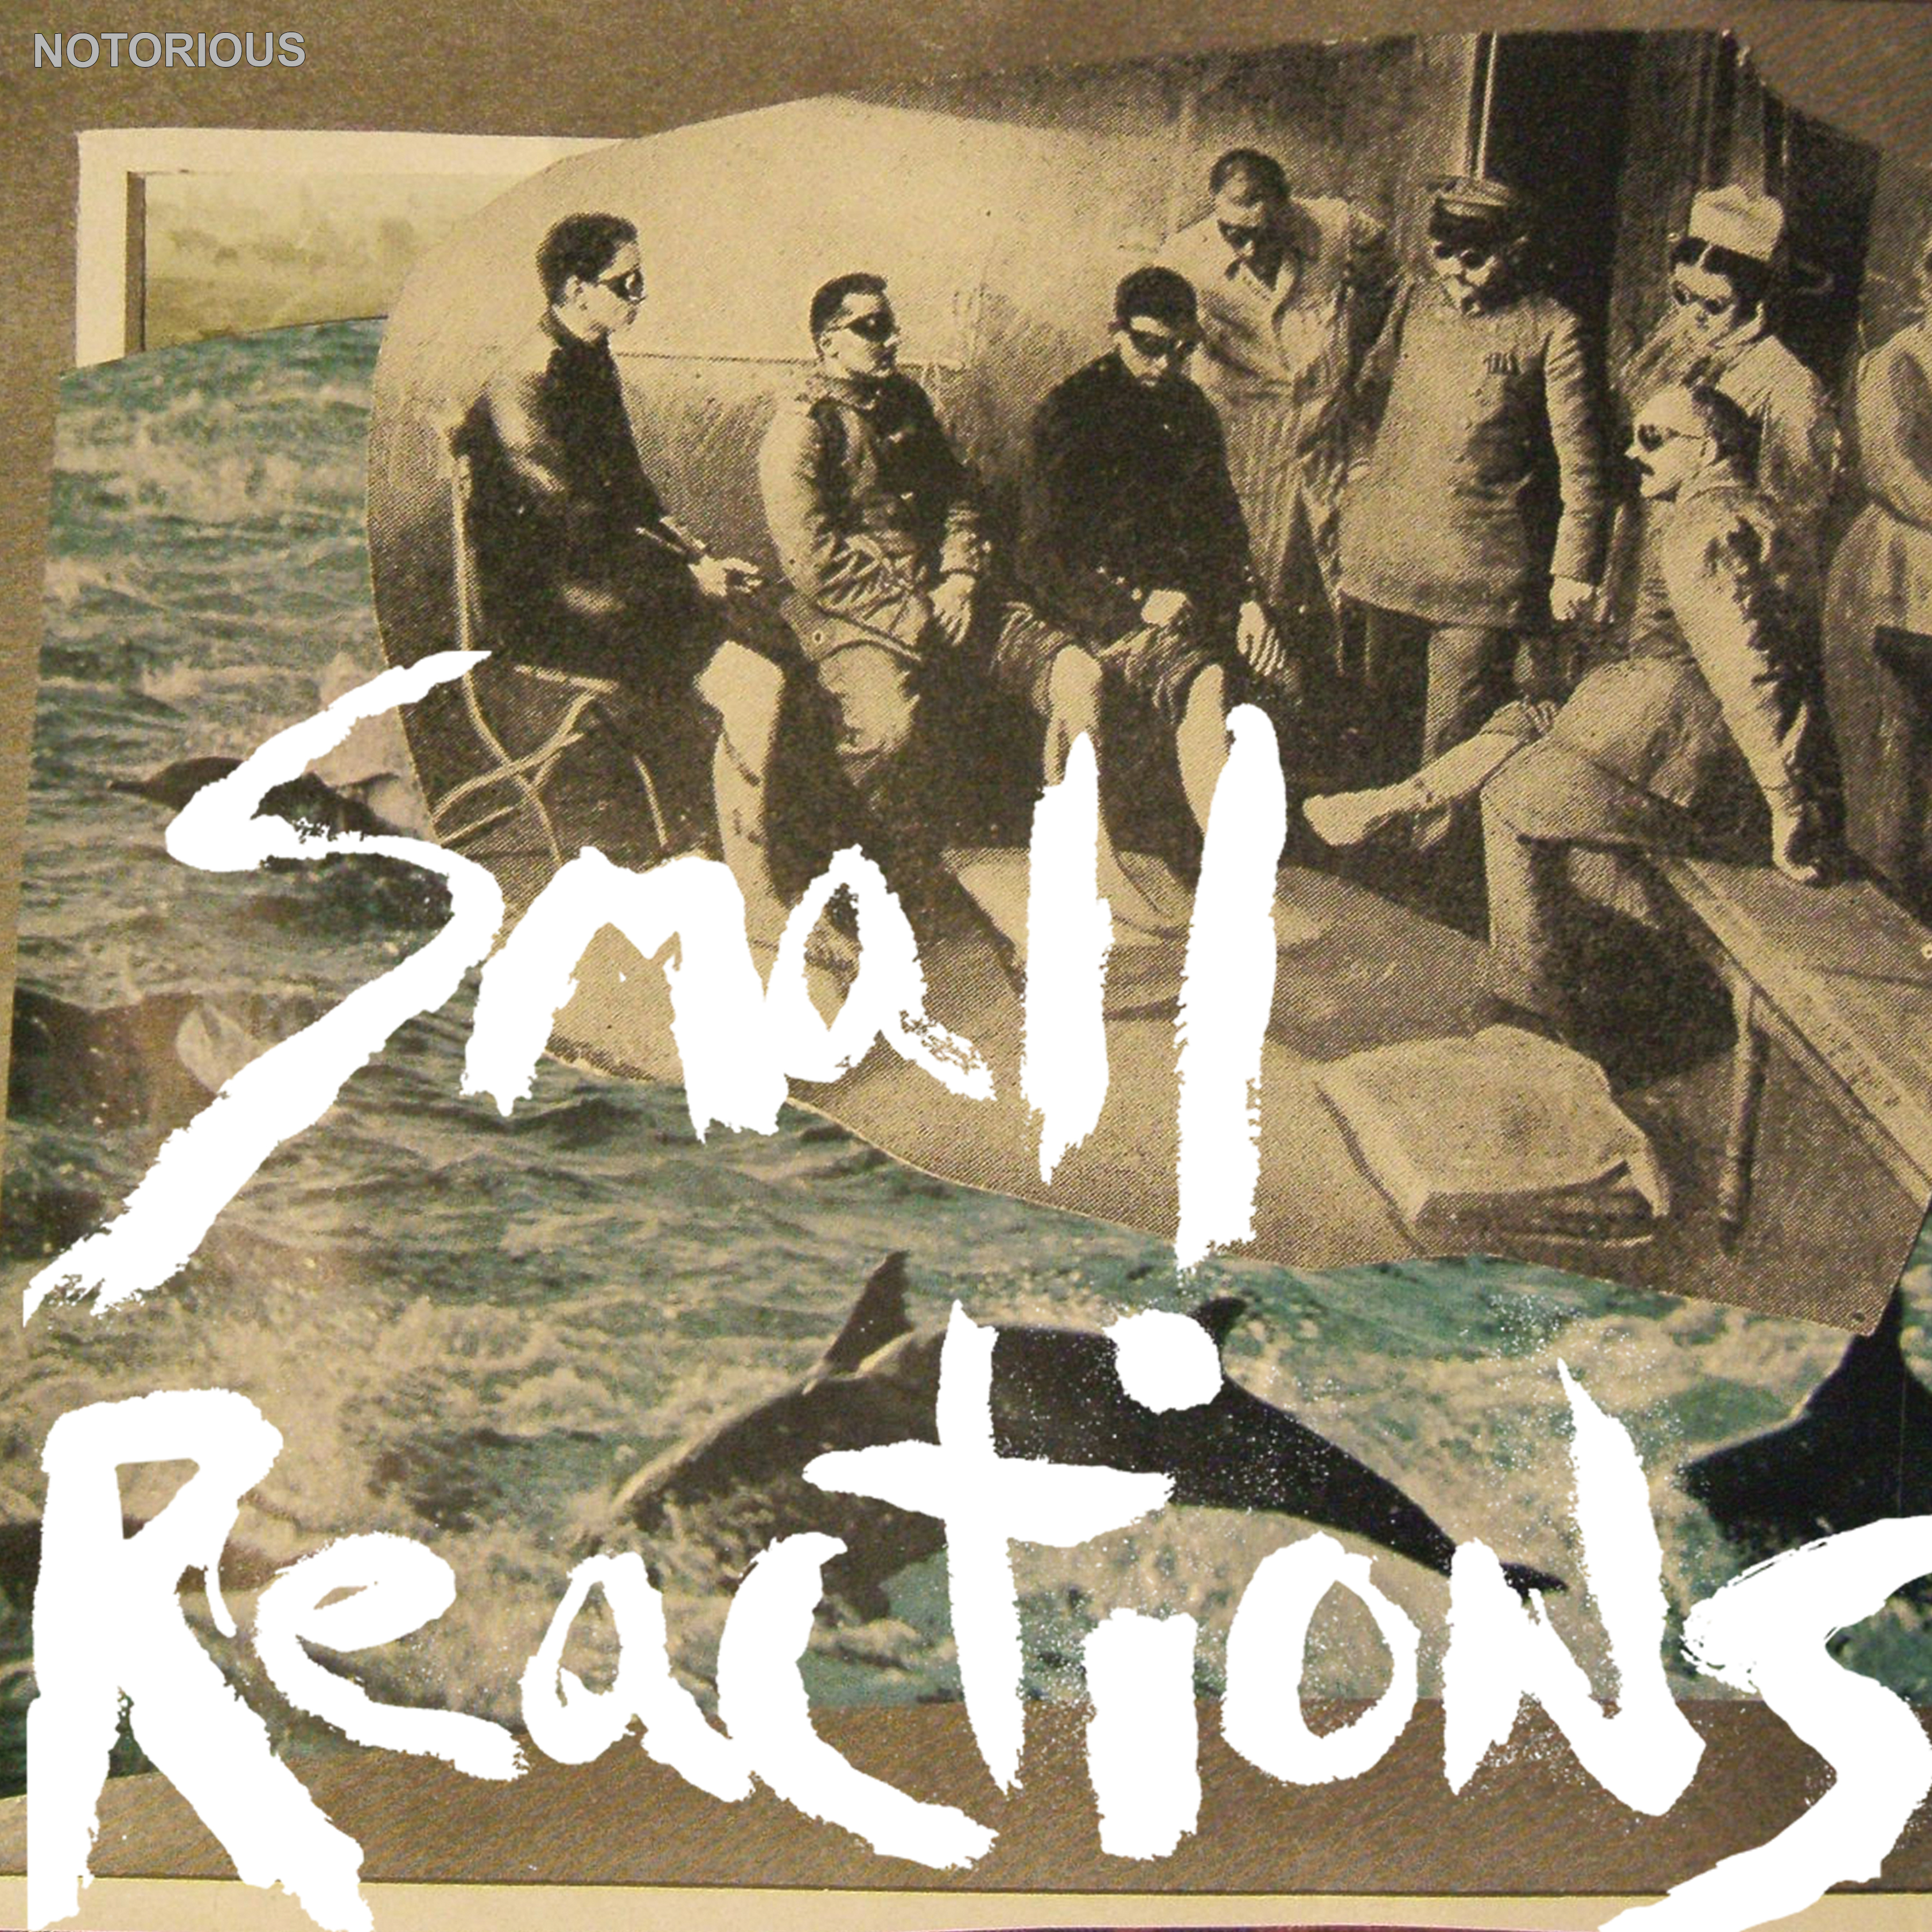 Small Reactions - Notorious